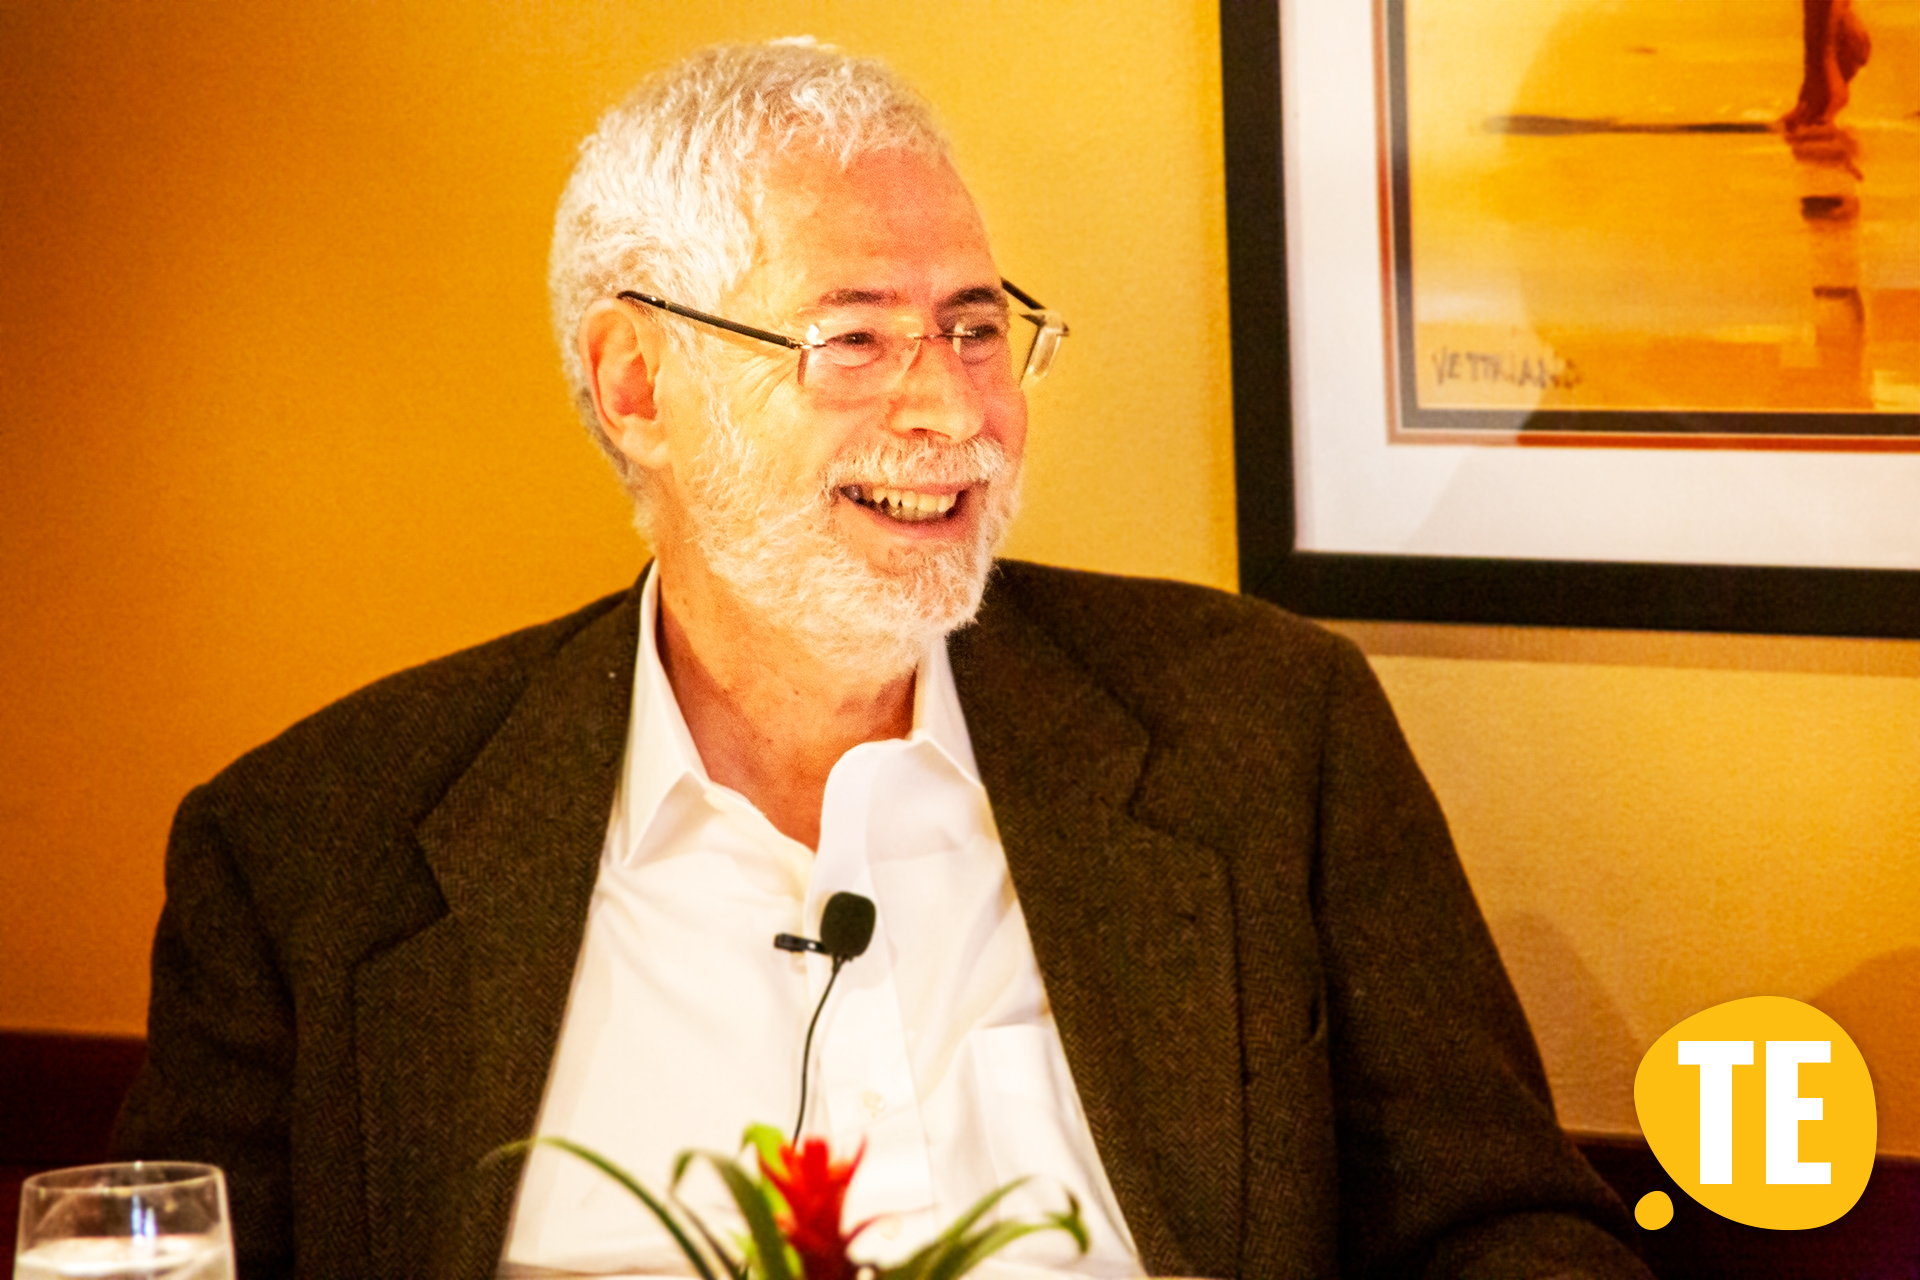 Steve Blank Talking about How to Teach Entrepreneurship